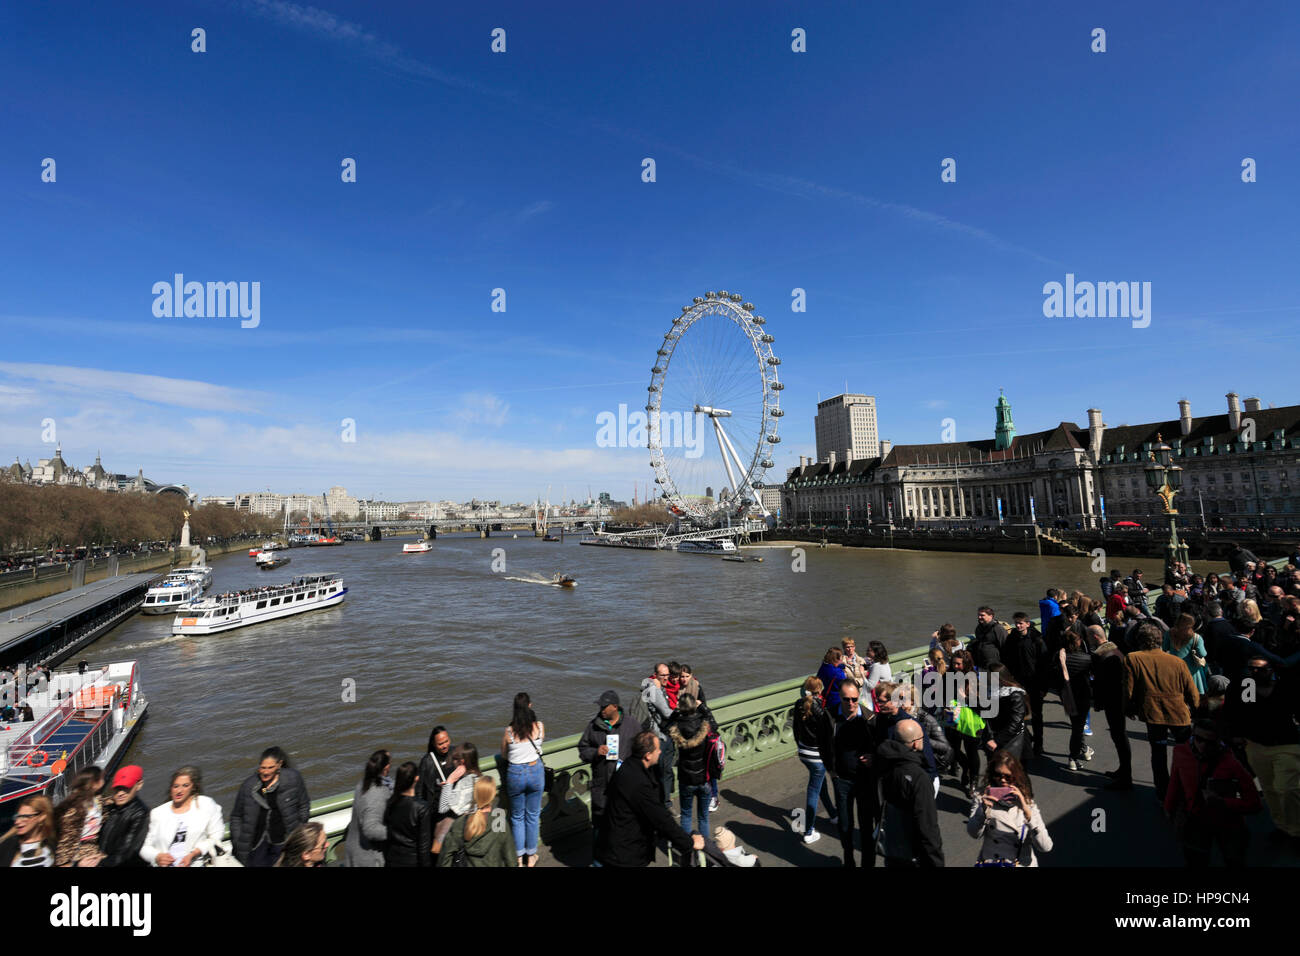 Tourists at the London Aquarium and Millennium Wheel, South Bank, River Thames, Westminster, London City, England, - Stock Image